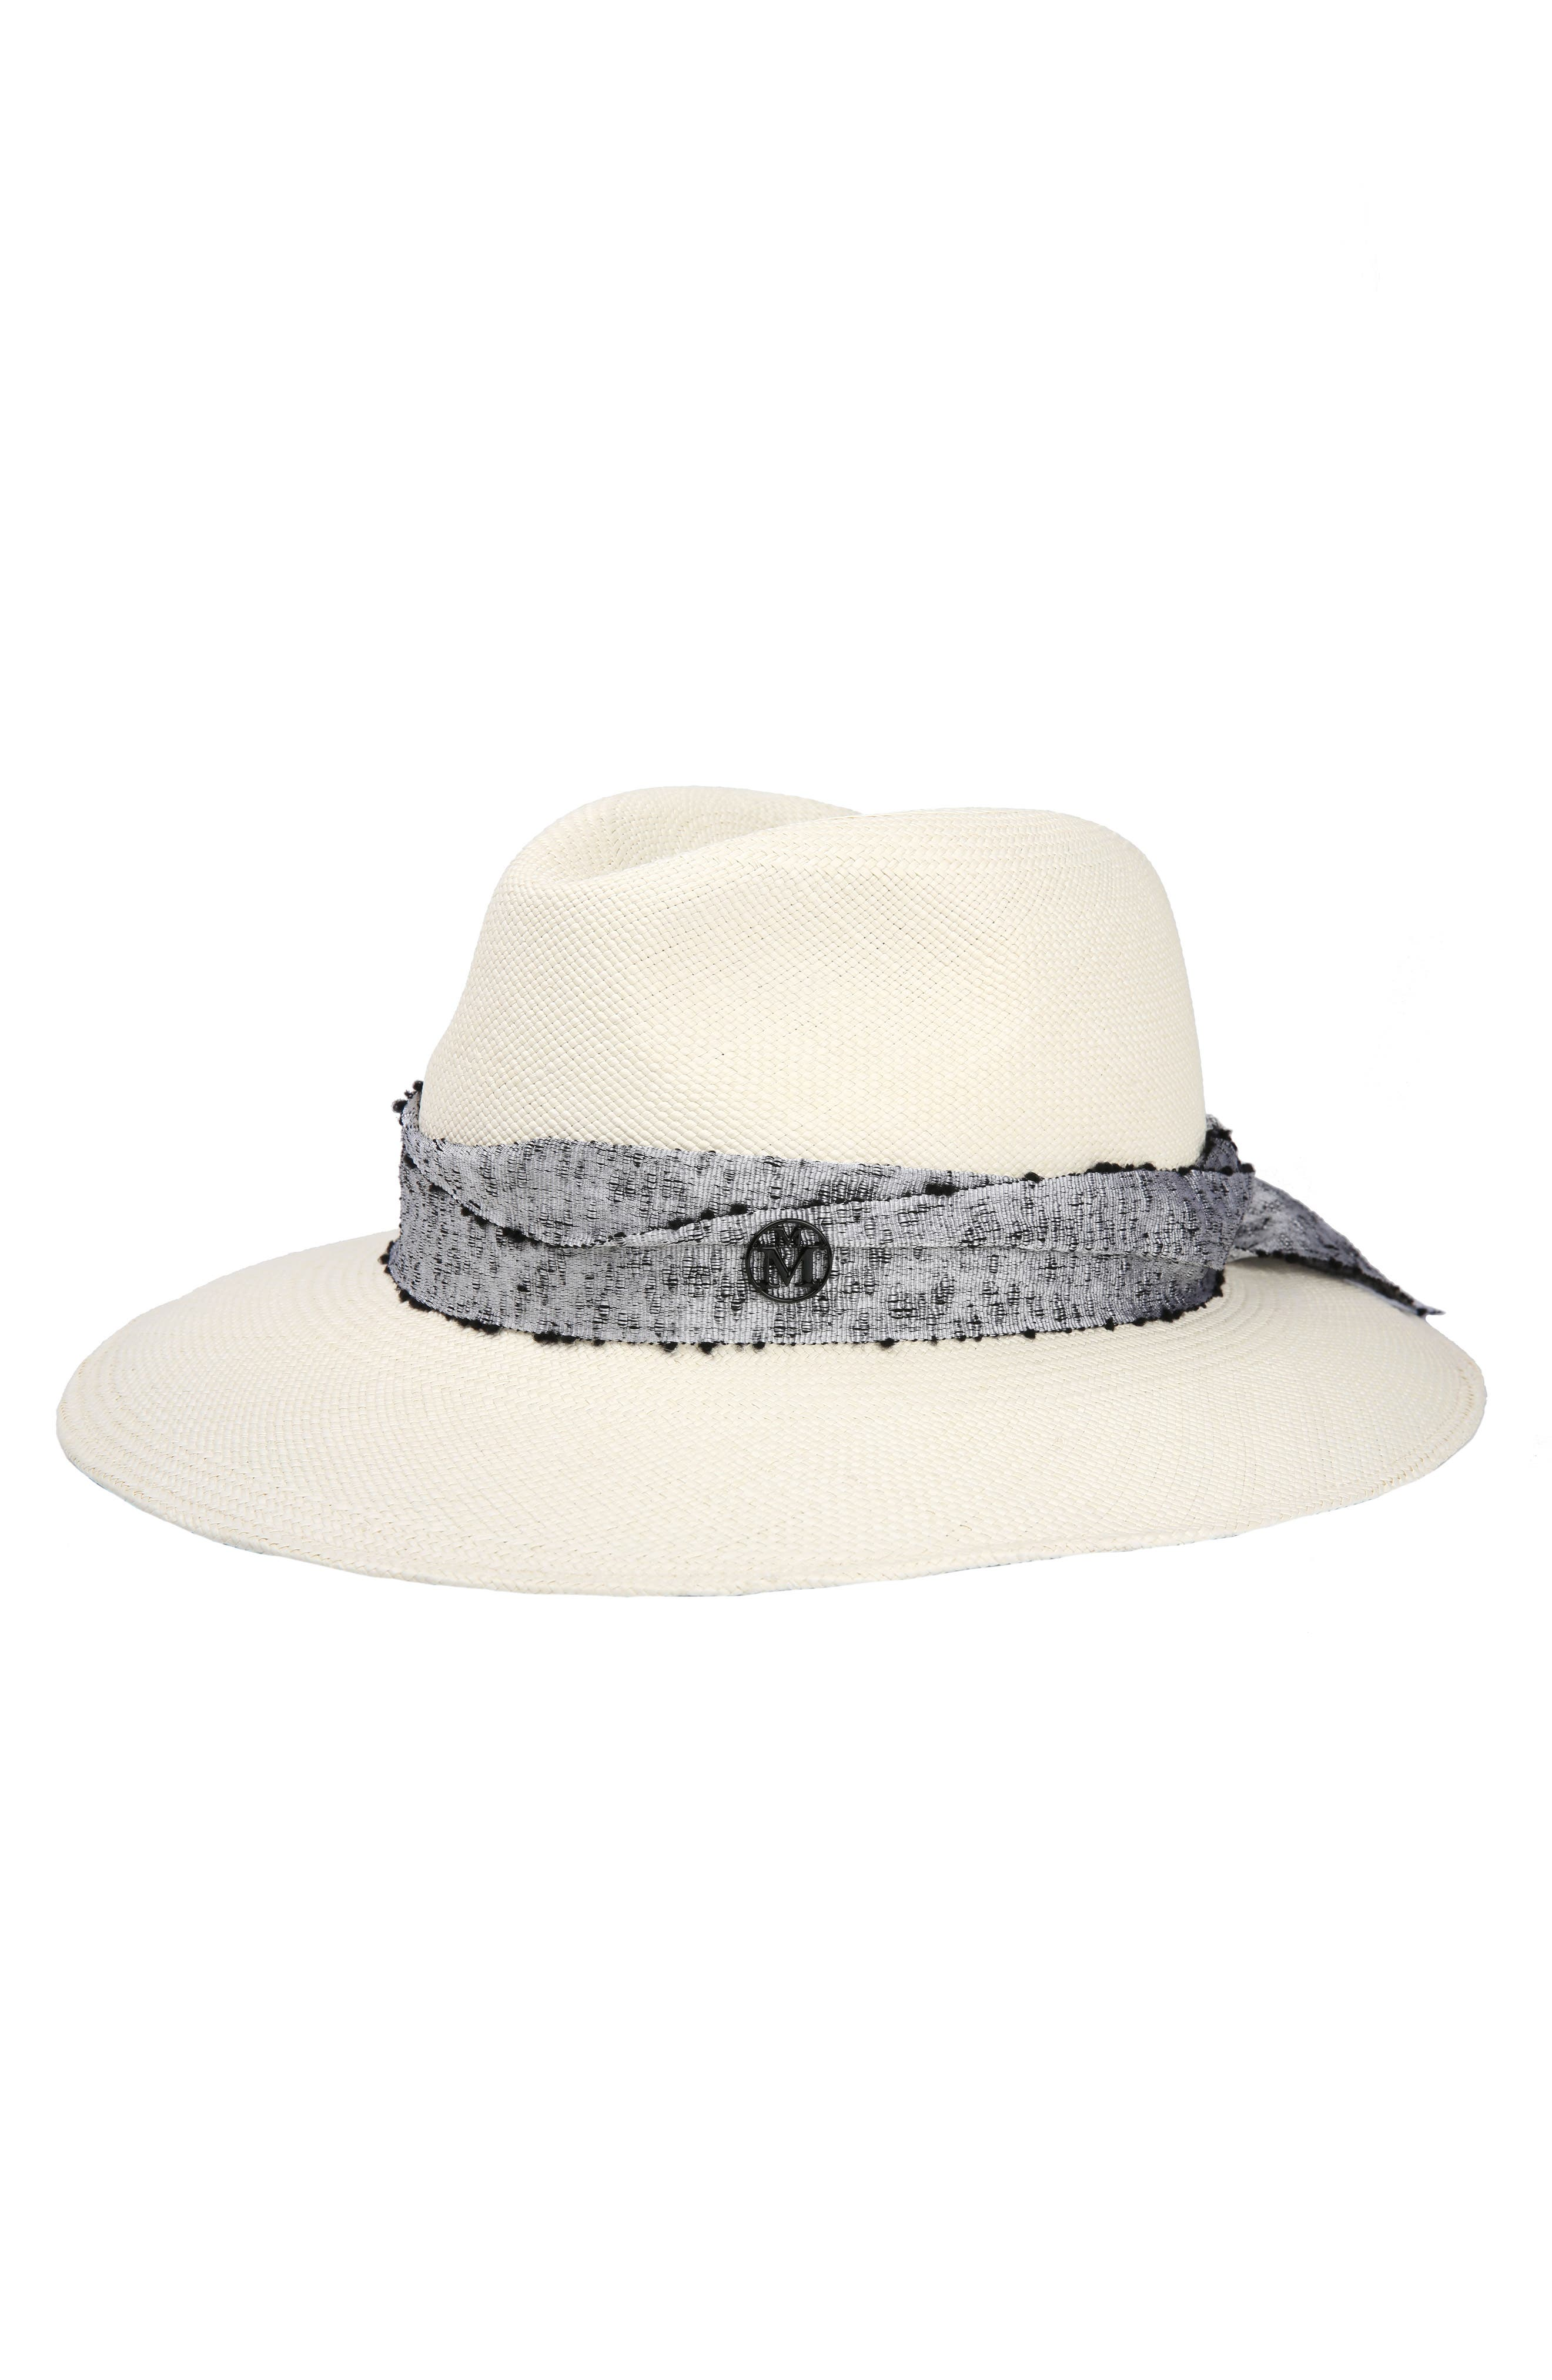 Henrietta Mottled Ribbon Hemp Hat,                             Main thumbnail 1, color,                             Off White/ Silver